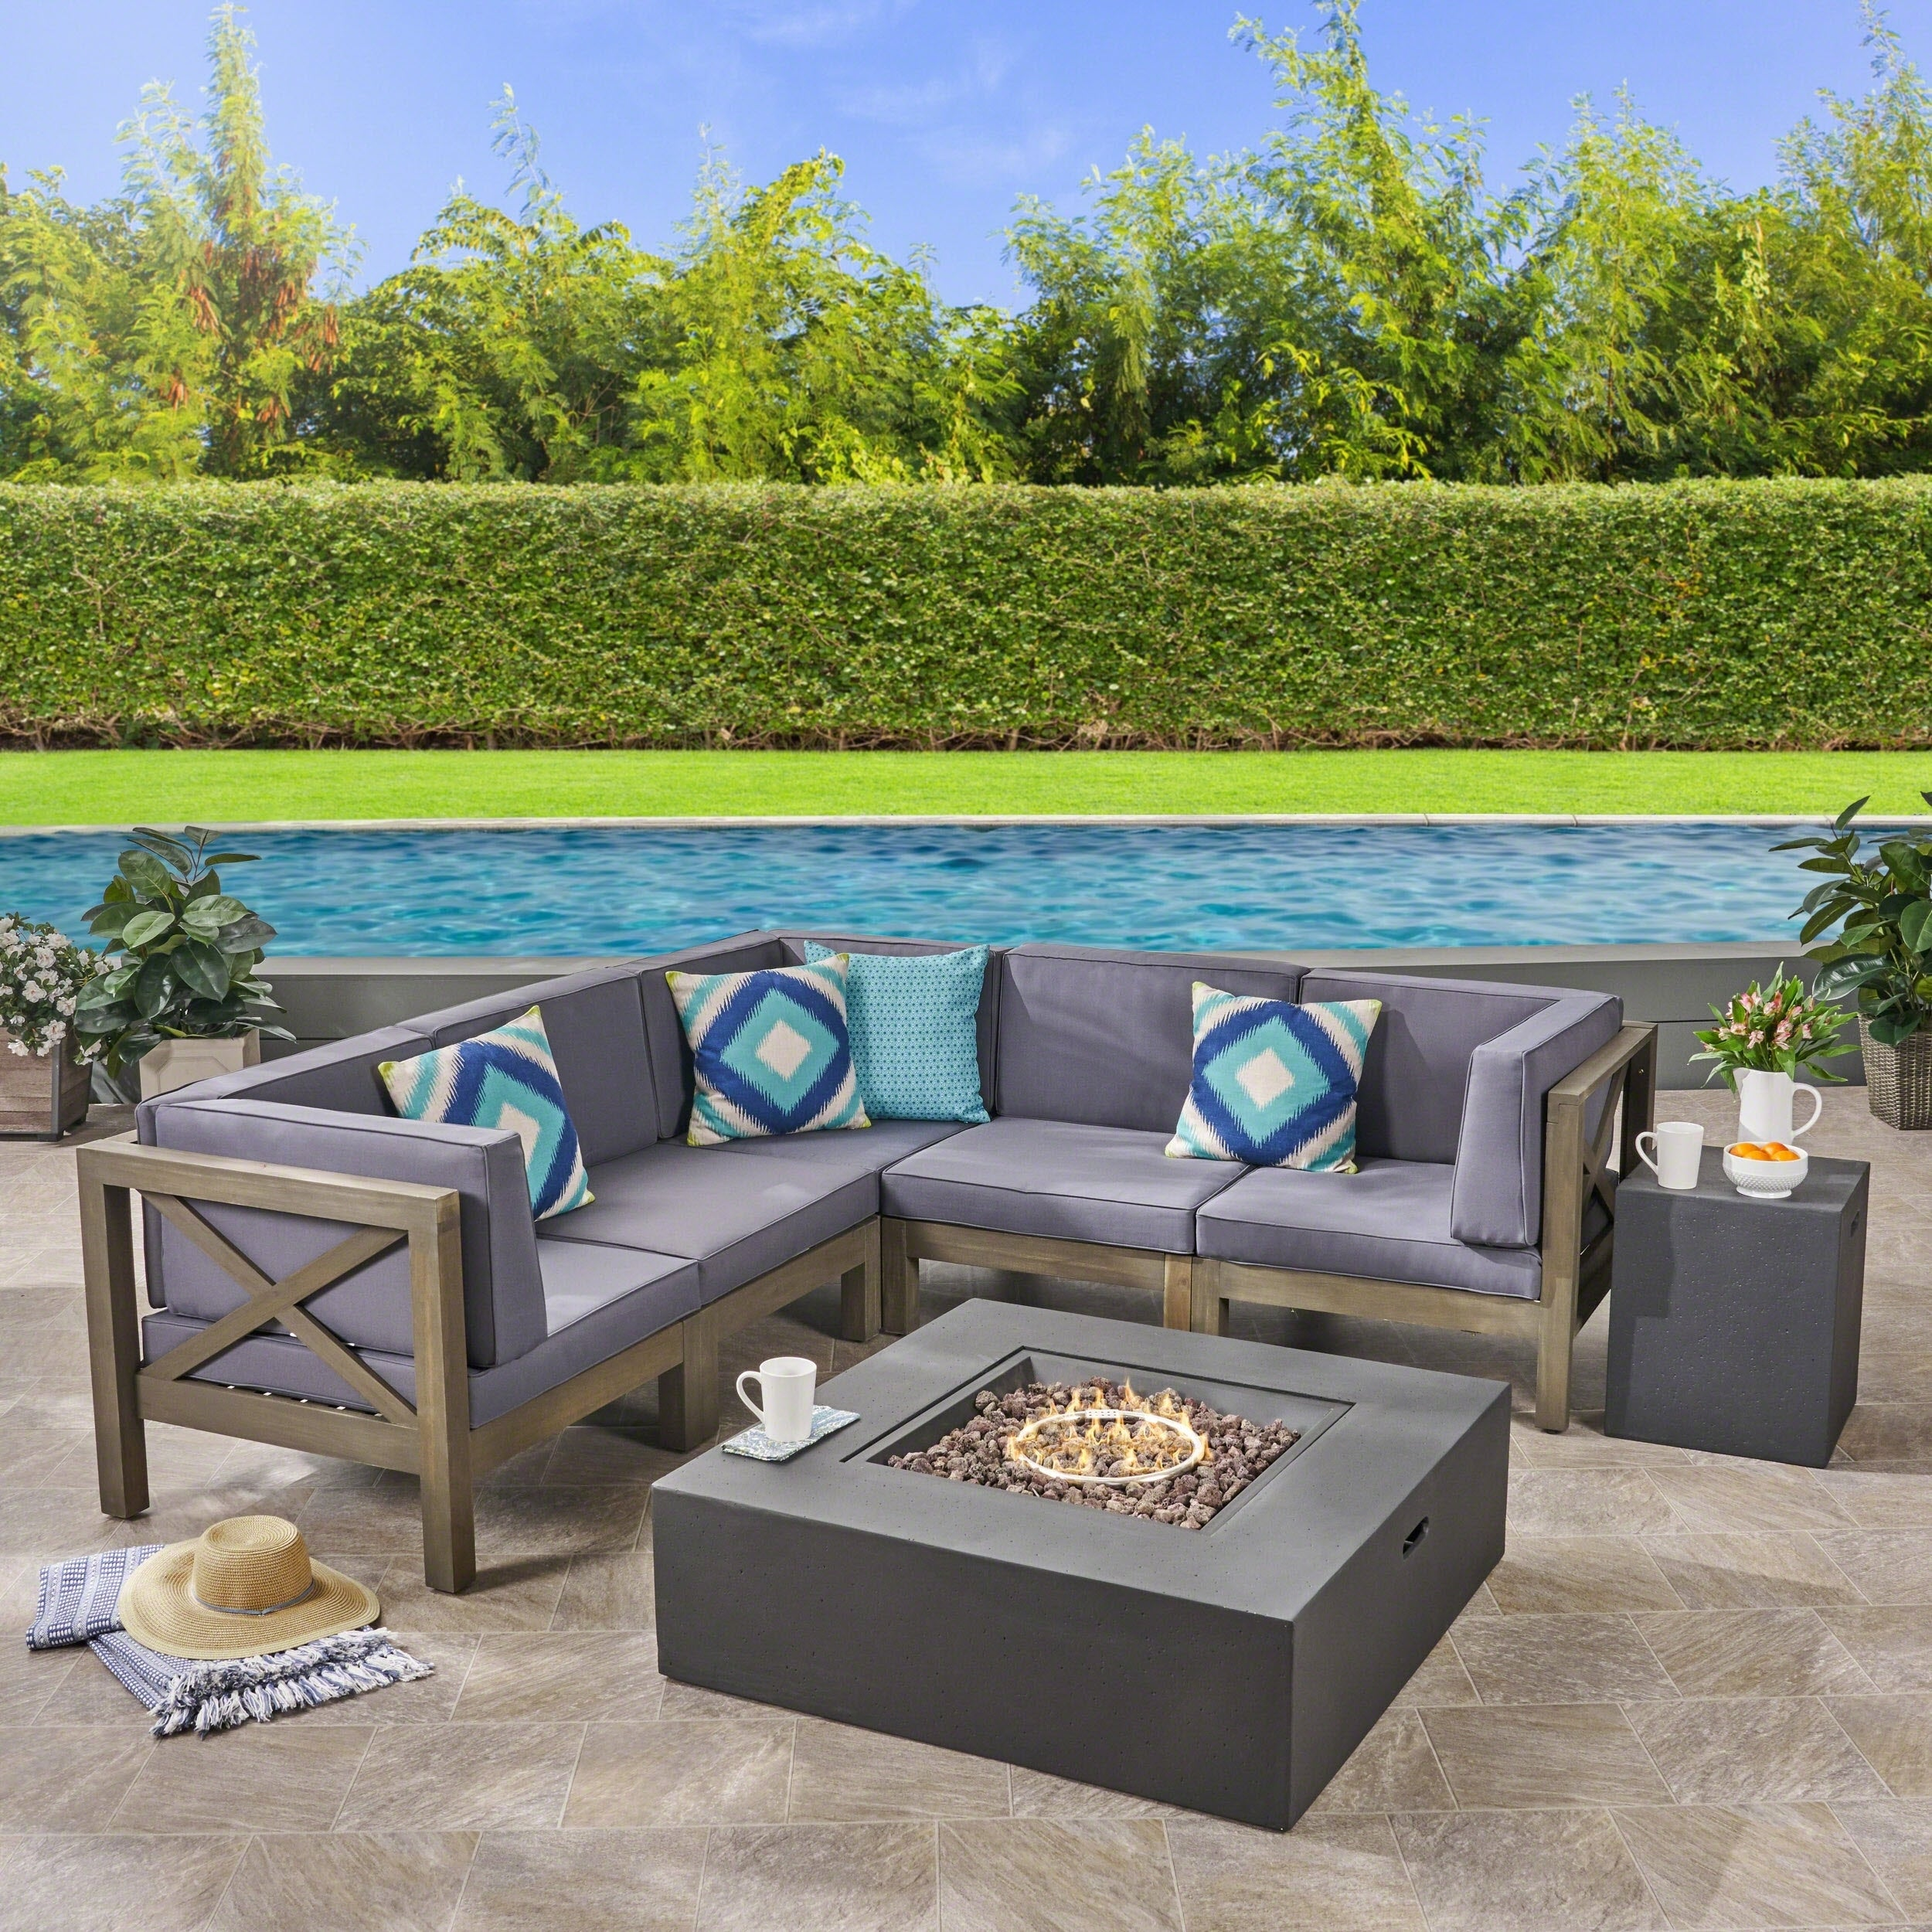 Brava Outdoor 7 Piece Acacia Wood Sectional Sofa Set With Fire Pit By  Christopher Knight